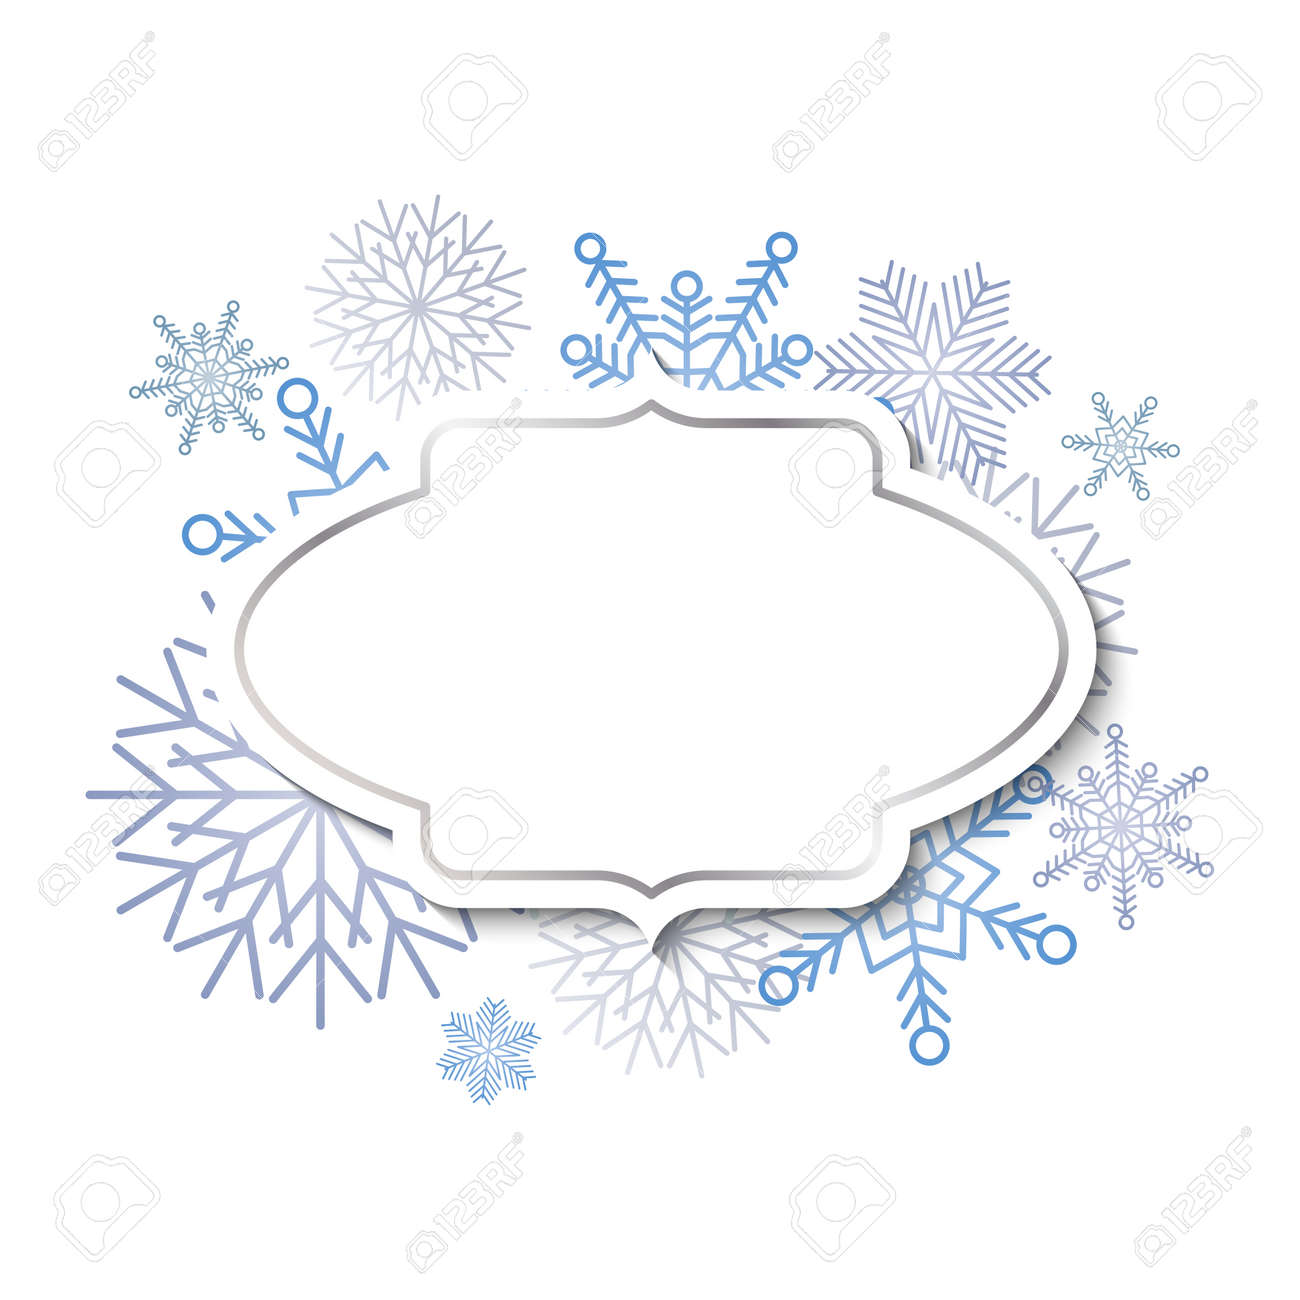 Winter vintage label template with silver frame on blue snowflakes